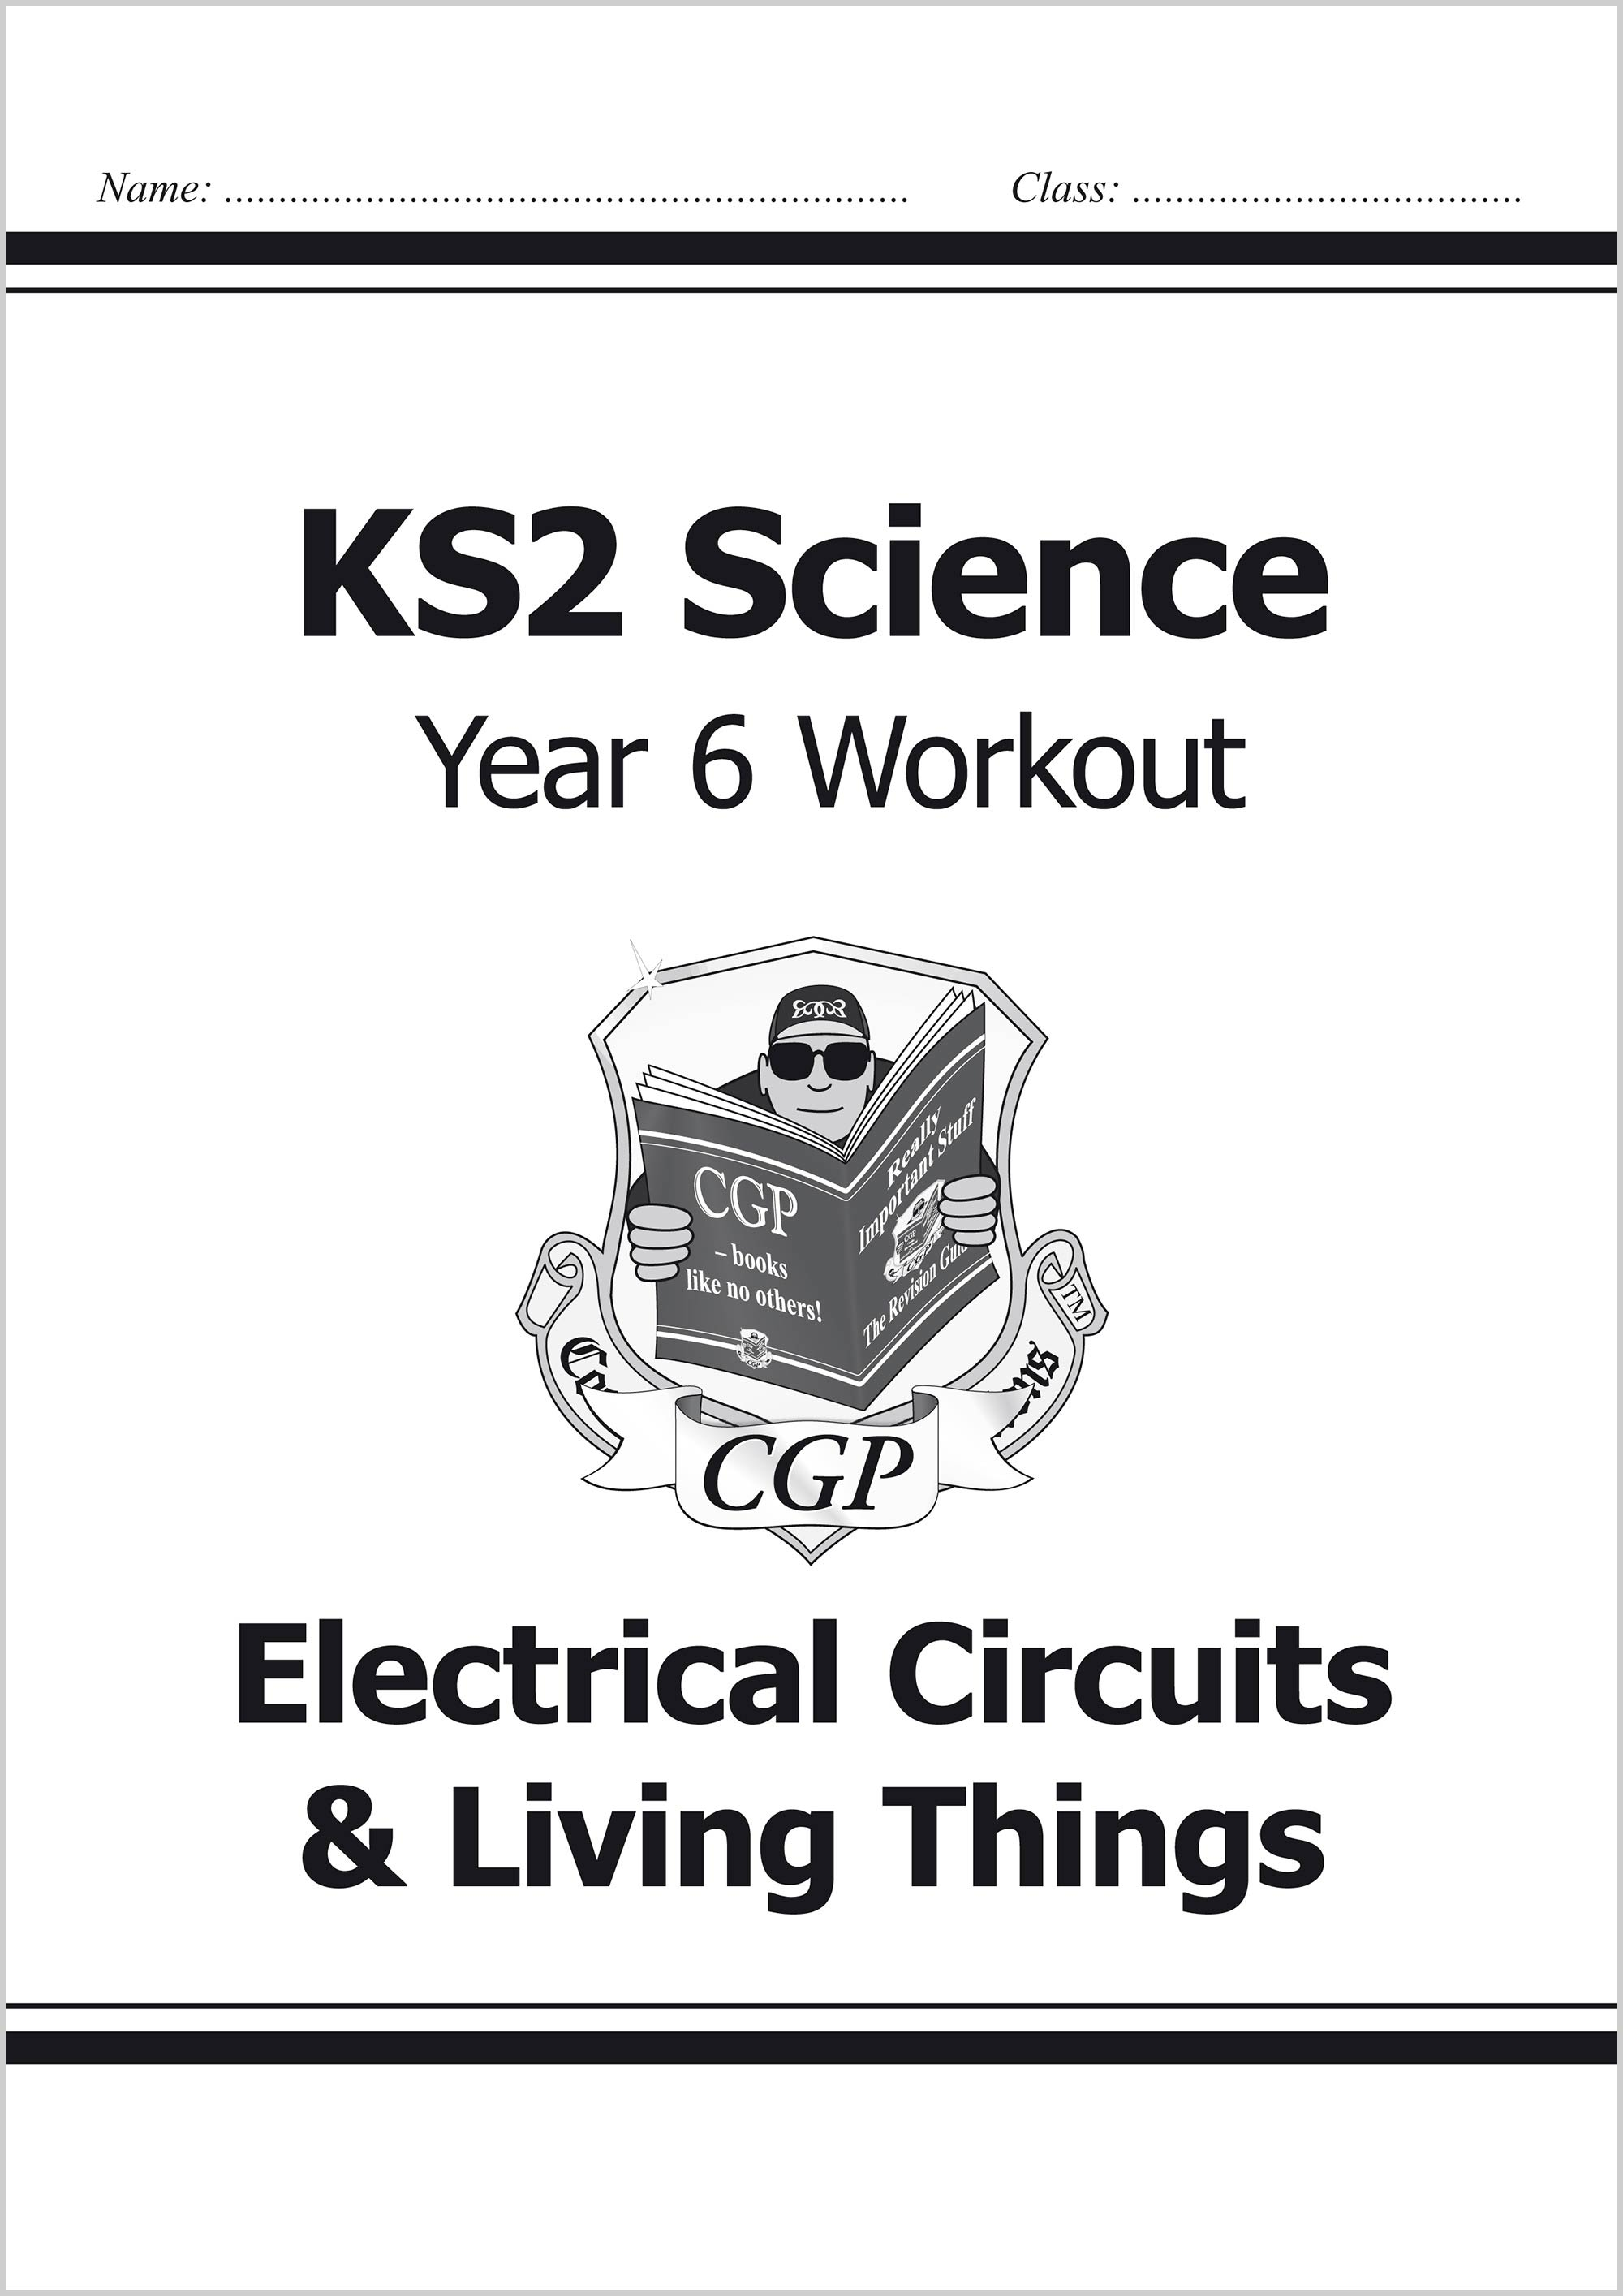 S6D22 - KS2 Science Year Six Workout: Electrical Circuits & Living Things